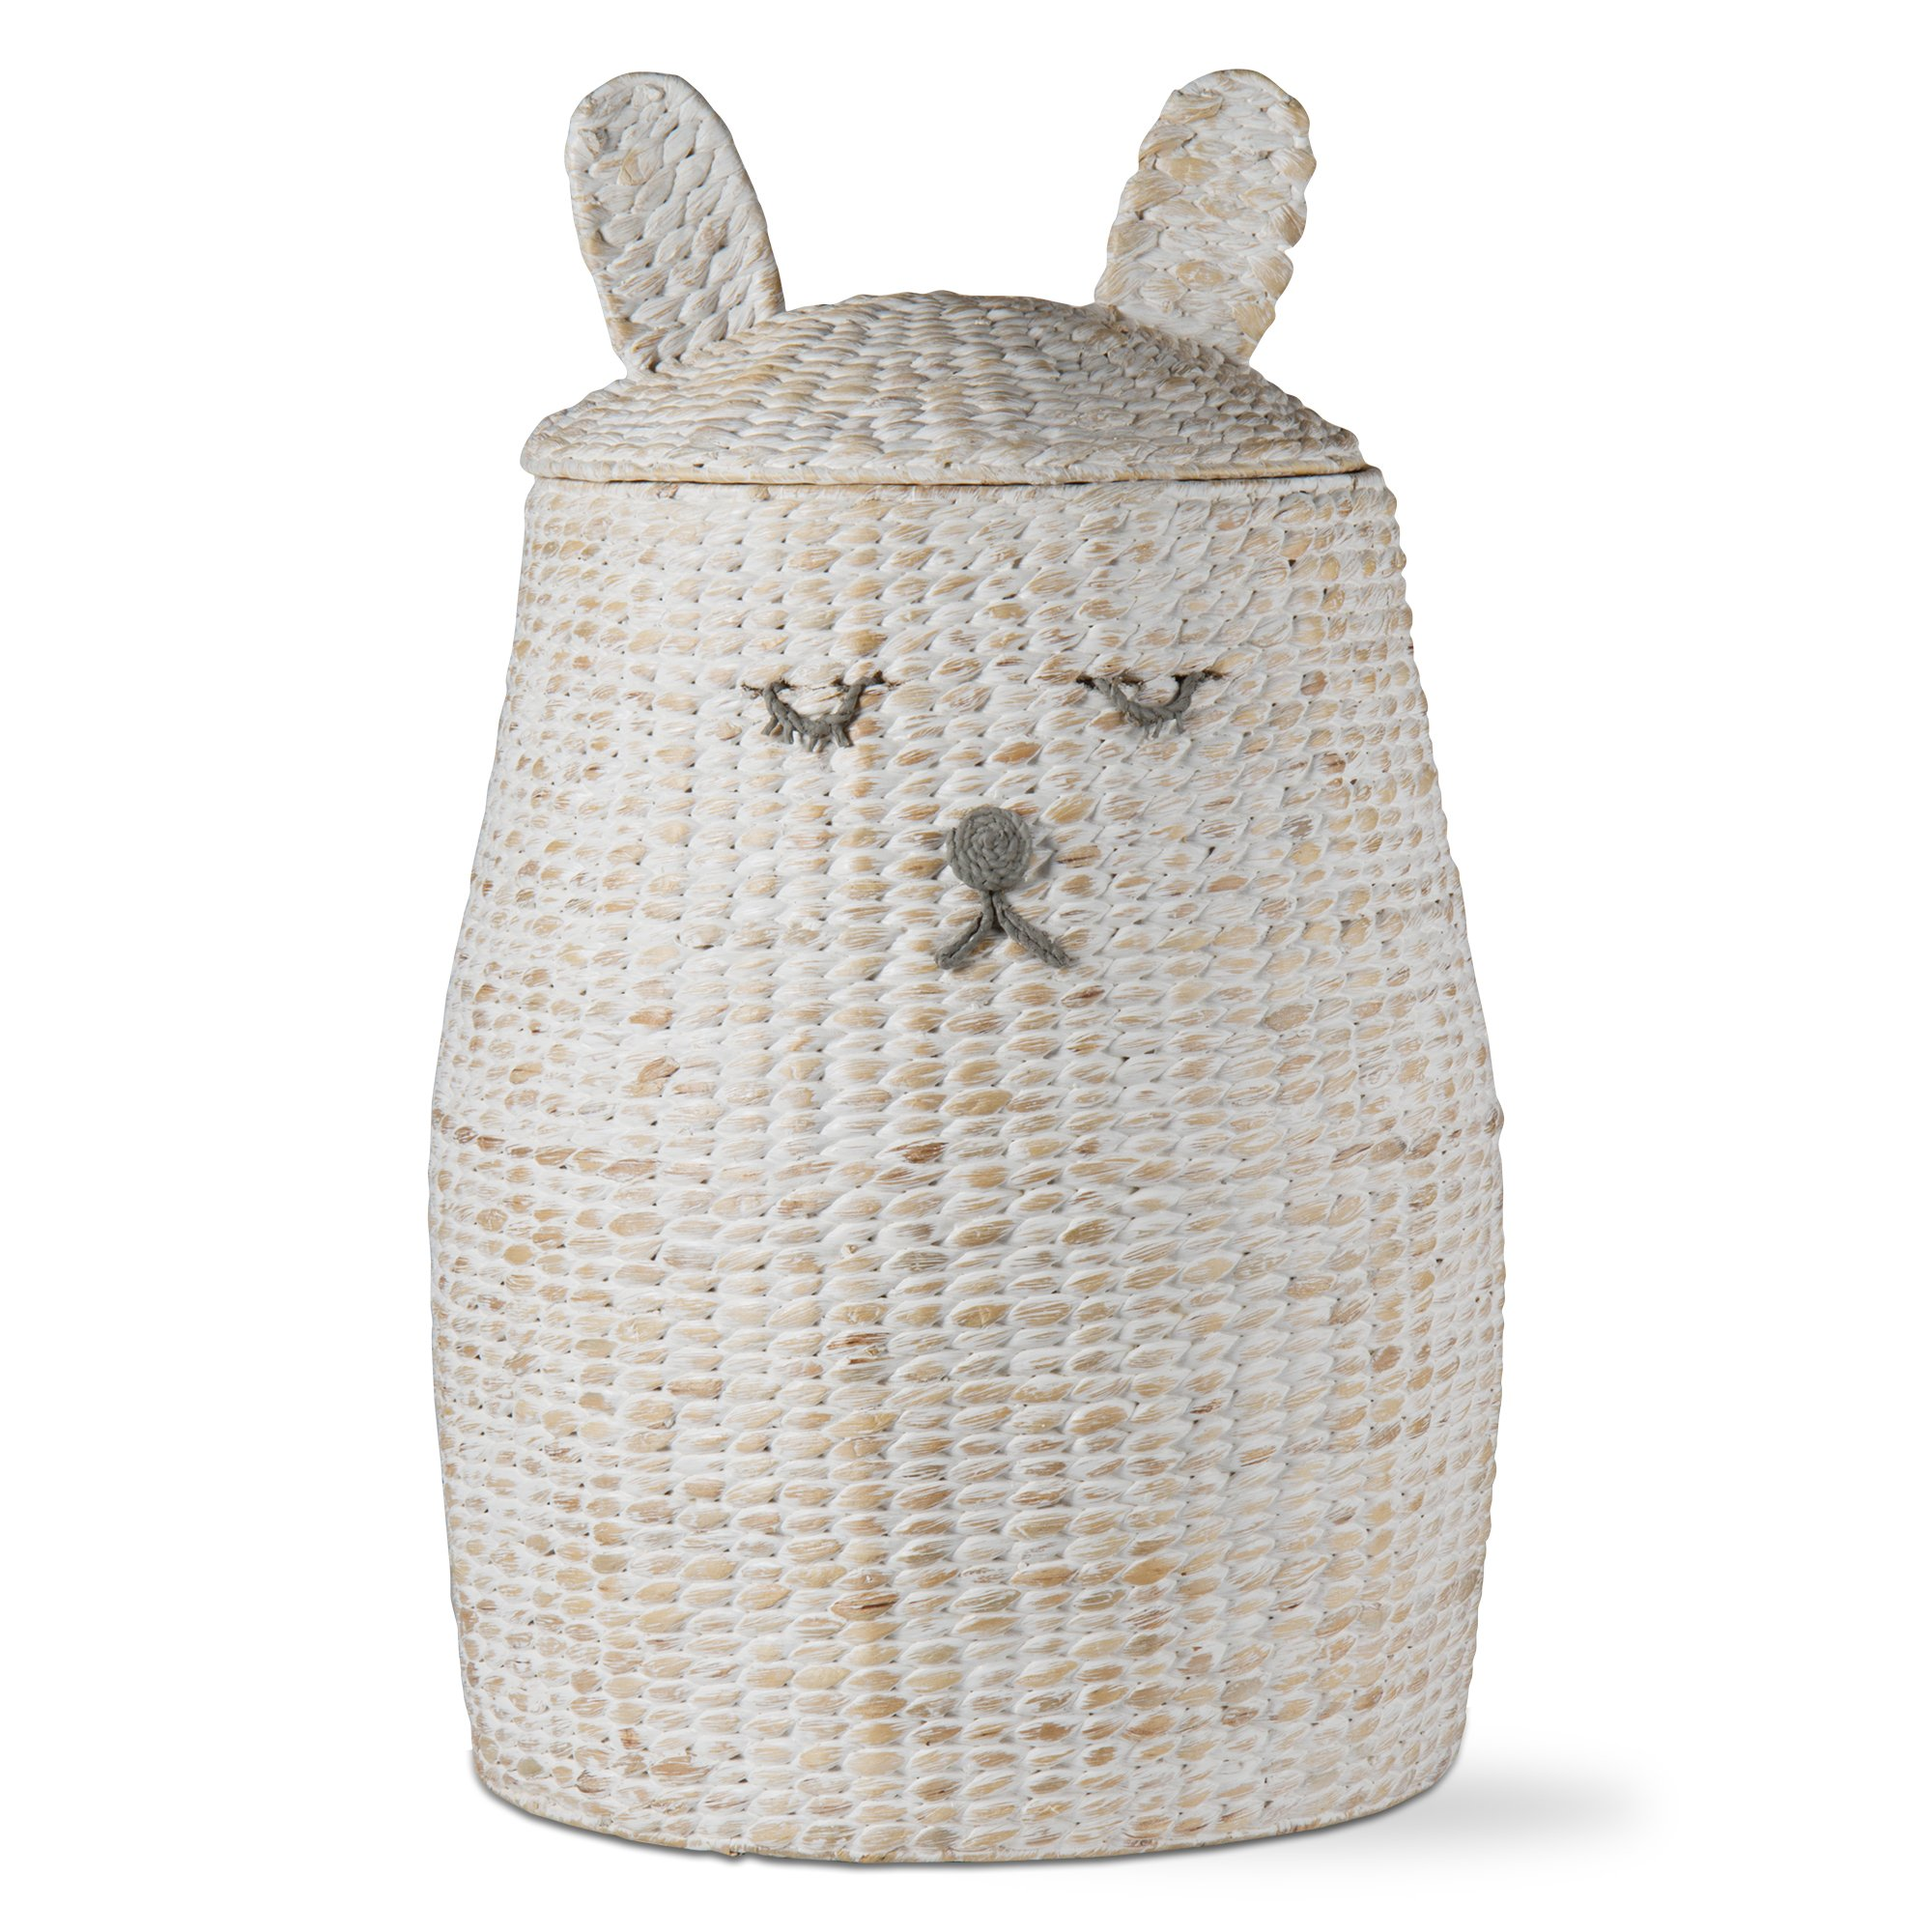 tag - Sleepy Bunny Hamper, Perfectly Designed for Your Child's Room or Nursery, White & Tan (28.75'' H x 18'' Dia.) by tag